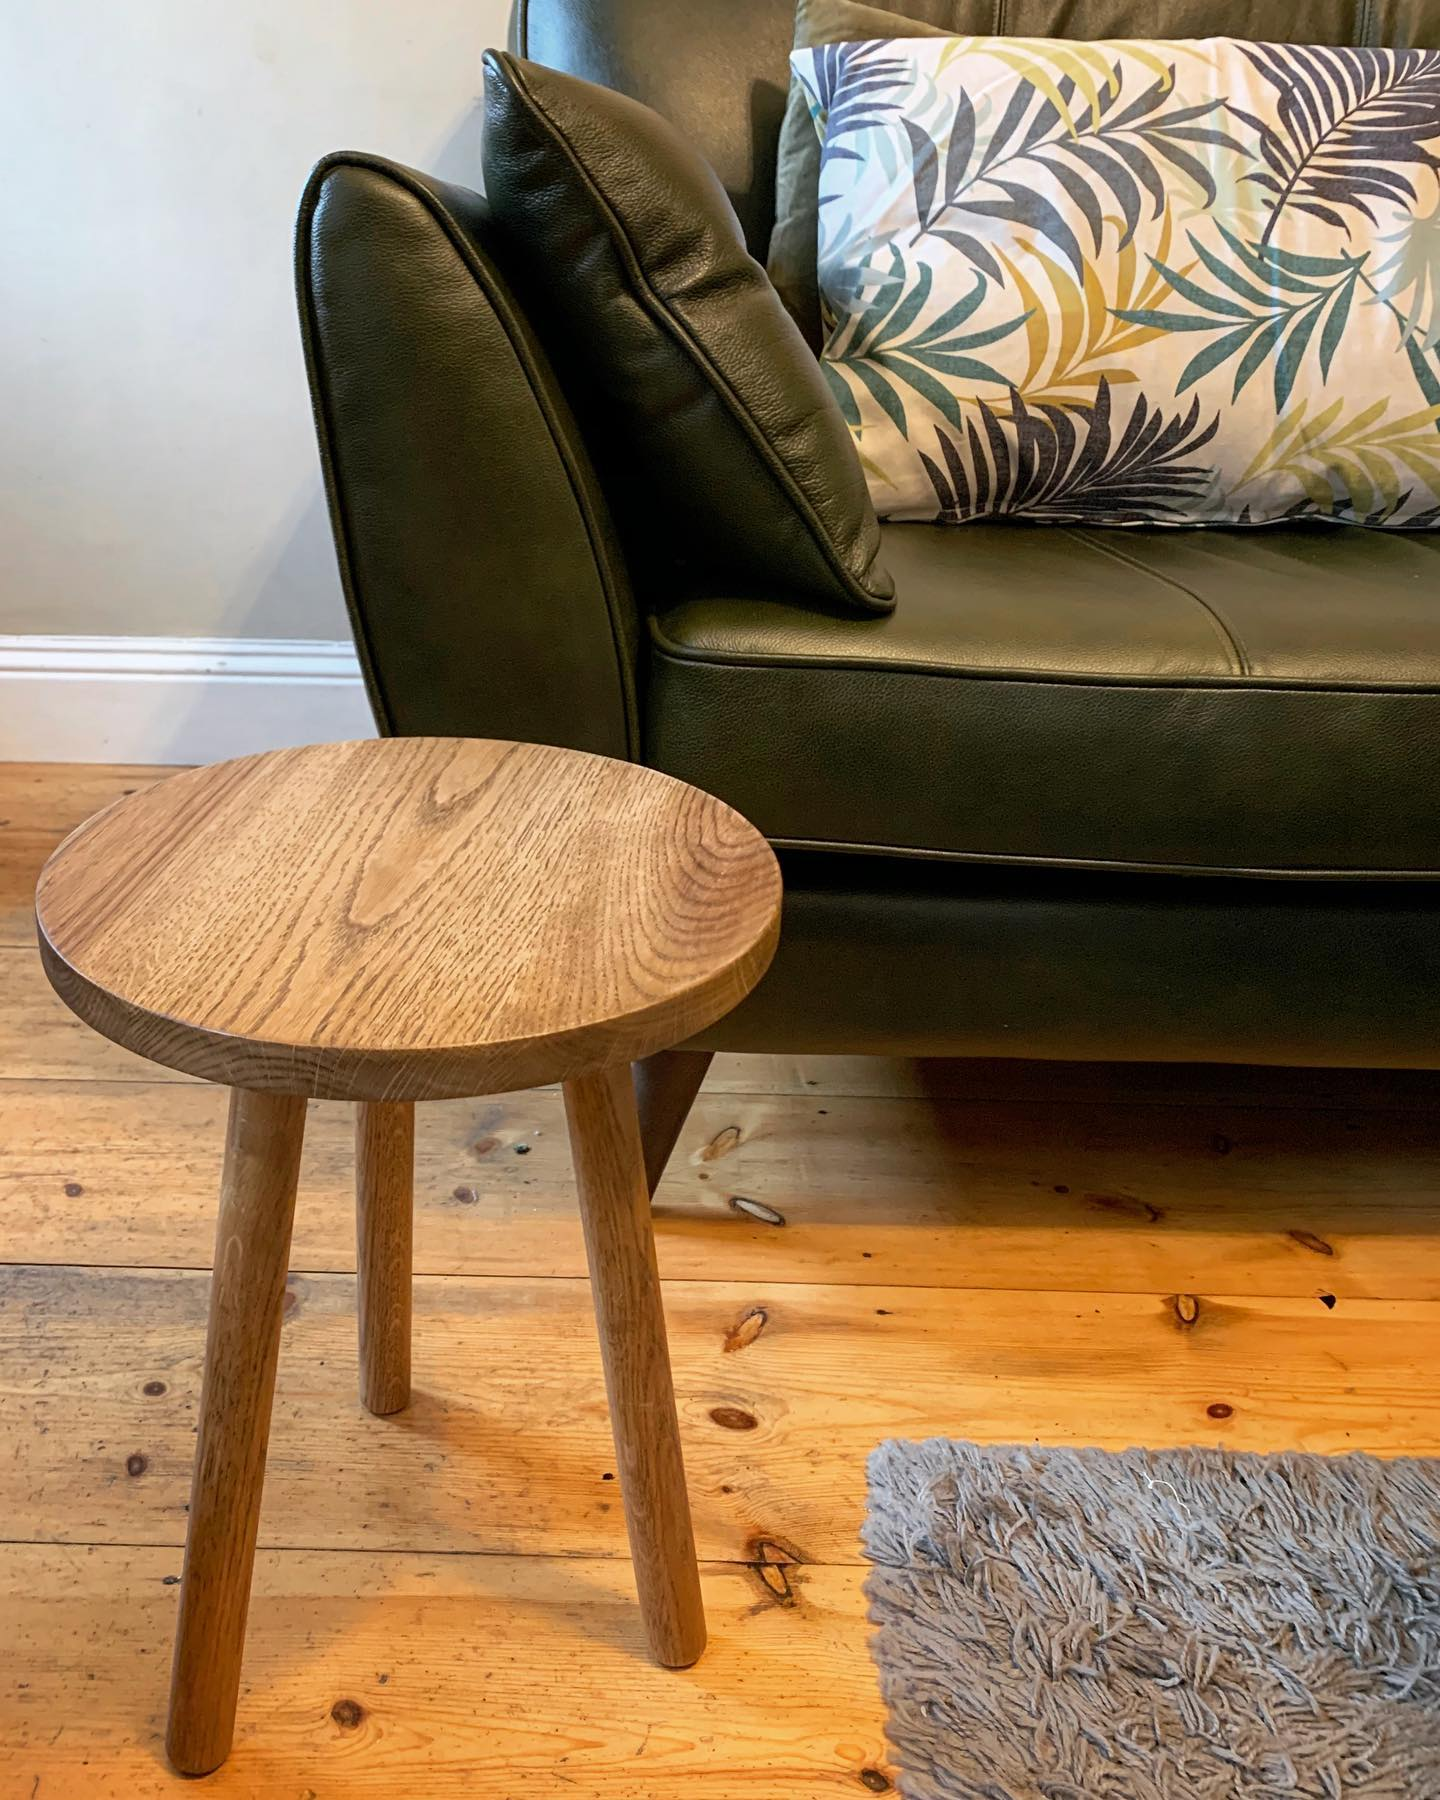 Finishing off another commission today.I think this little oak side table will have to be added to our permanent collection! ️ ...#bespoke #homewares #handcrafted #furnituredesign #rustic #scandi #oak #newproduct #craft #woodworking #simplebutbeautiful #useful #livingroomdecor #sidetable #homedecor